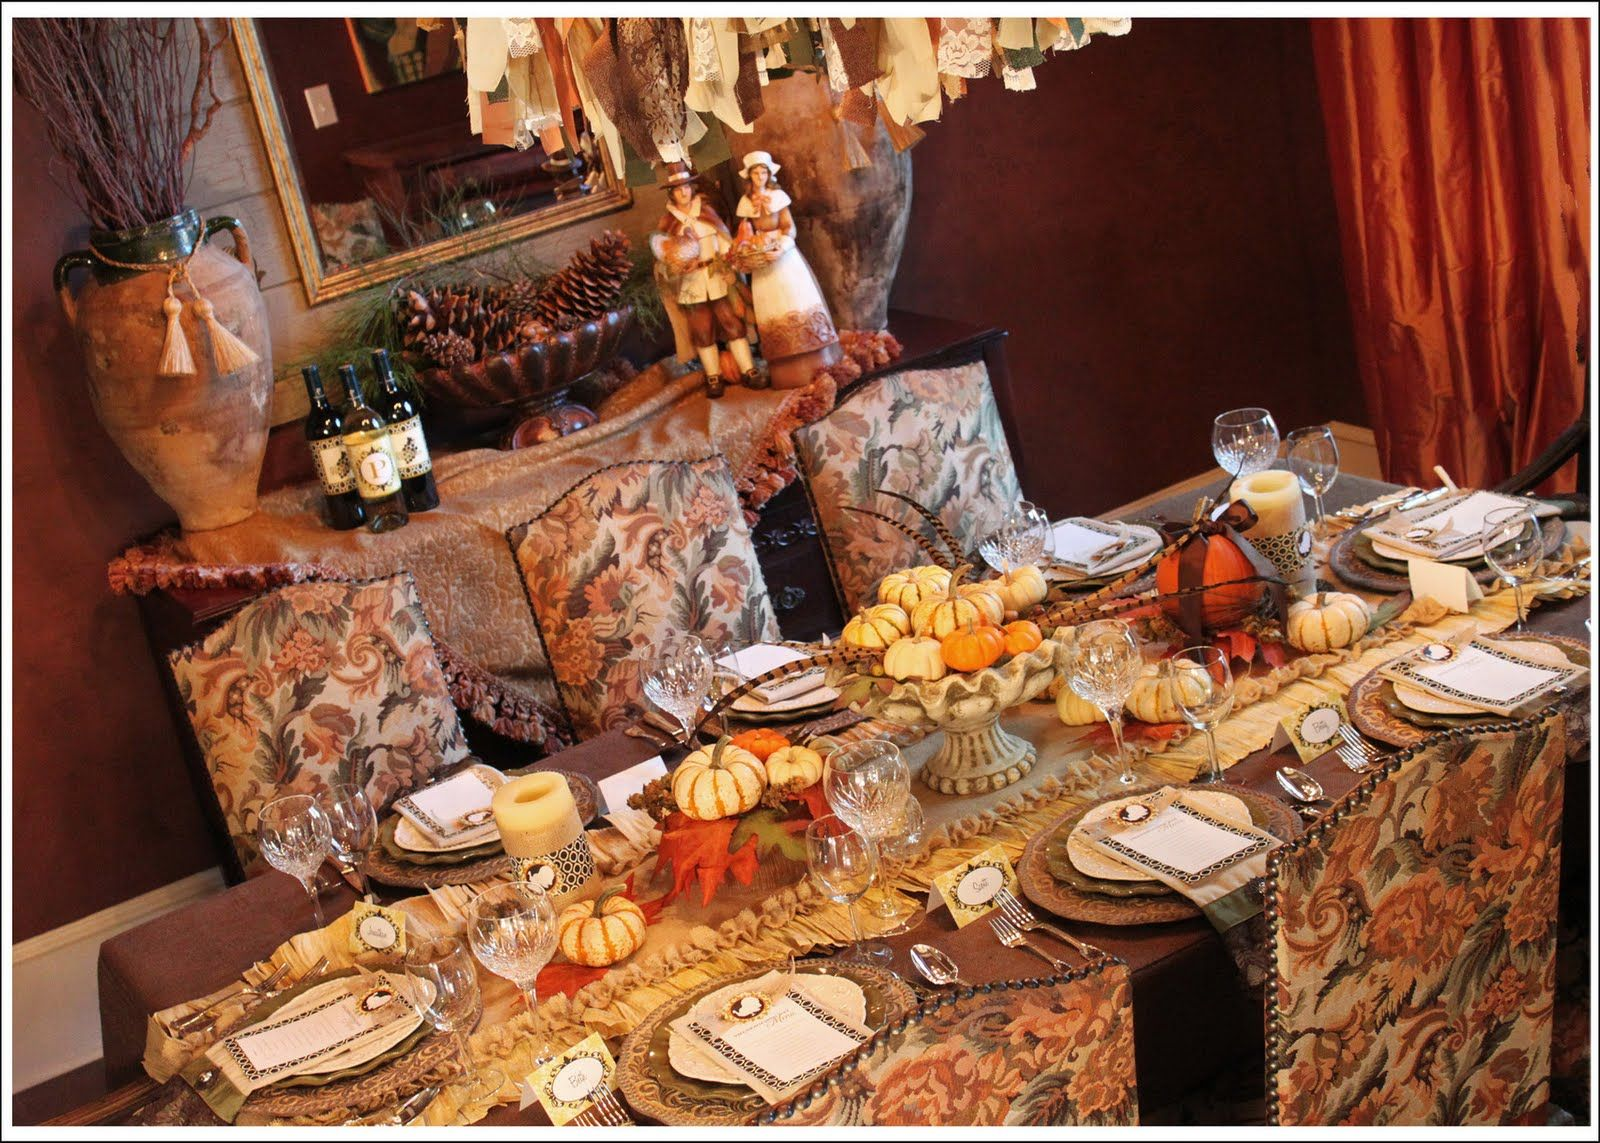 explore thanksgiving table settings and more - Thanksgiving Table Settings Pinterest